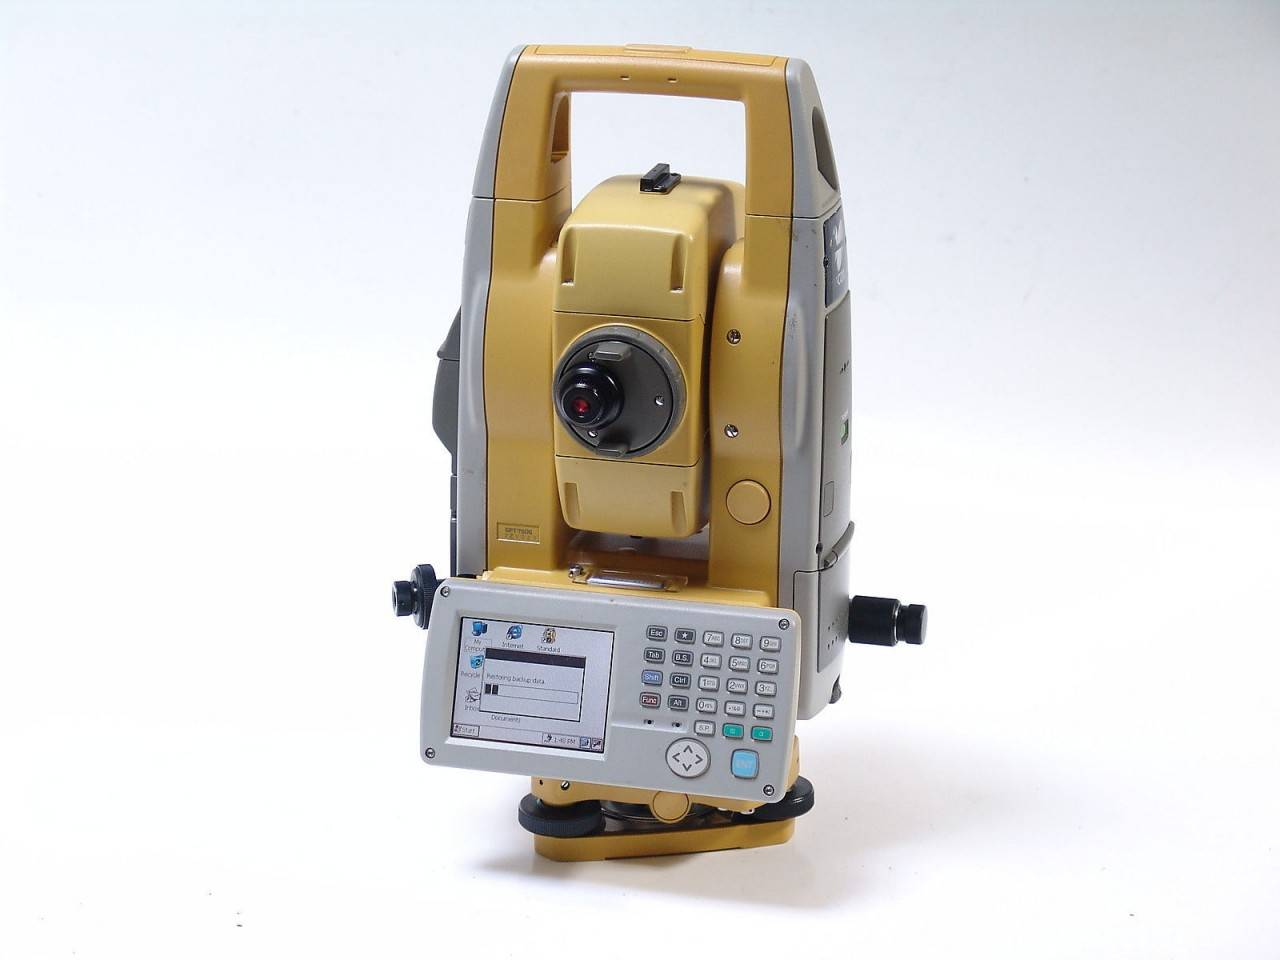 Topcon GPT-7505 total station